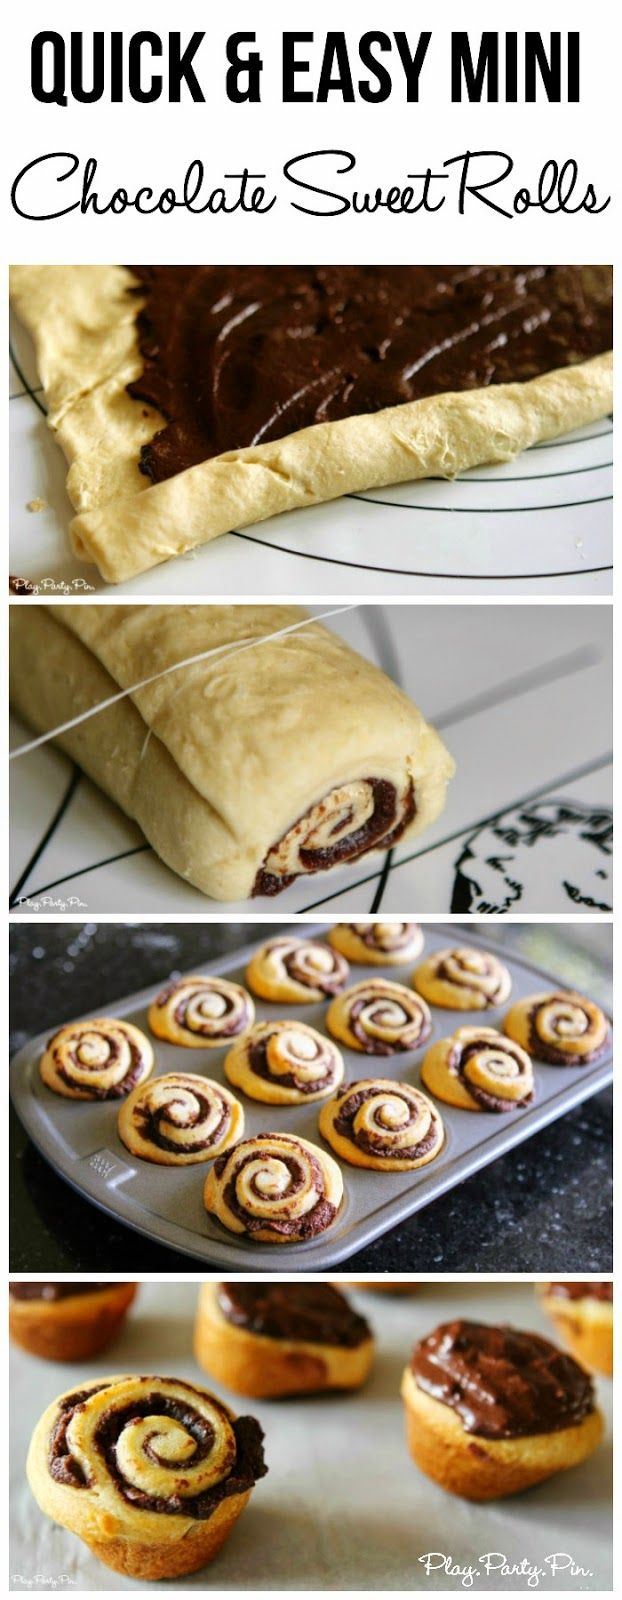 Mini chocolate sweet rolls made in under 20 minutes from playpartypin.com